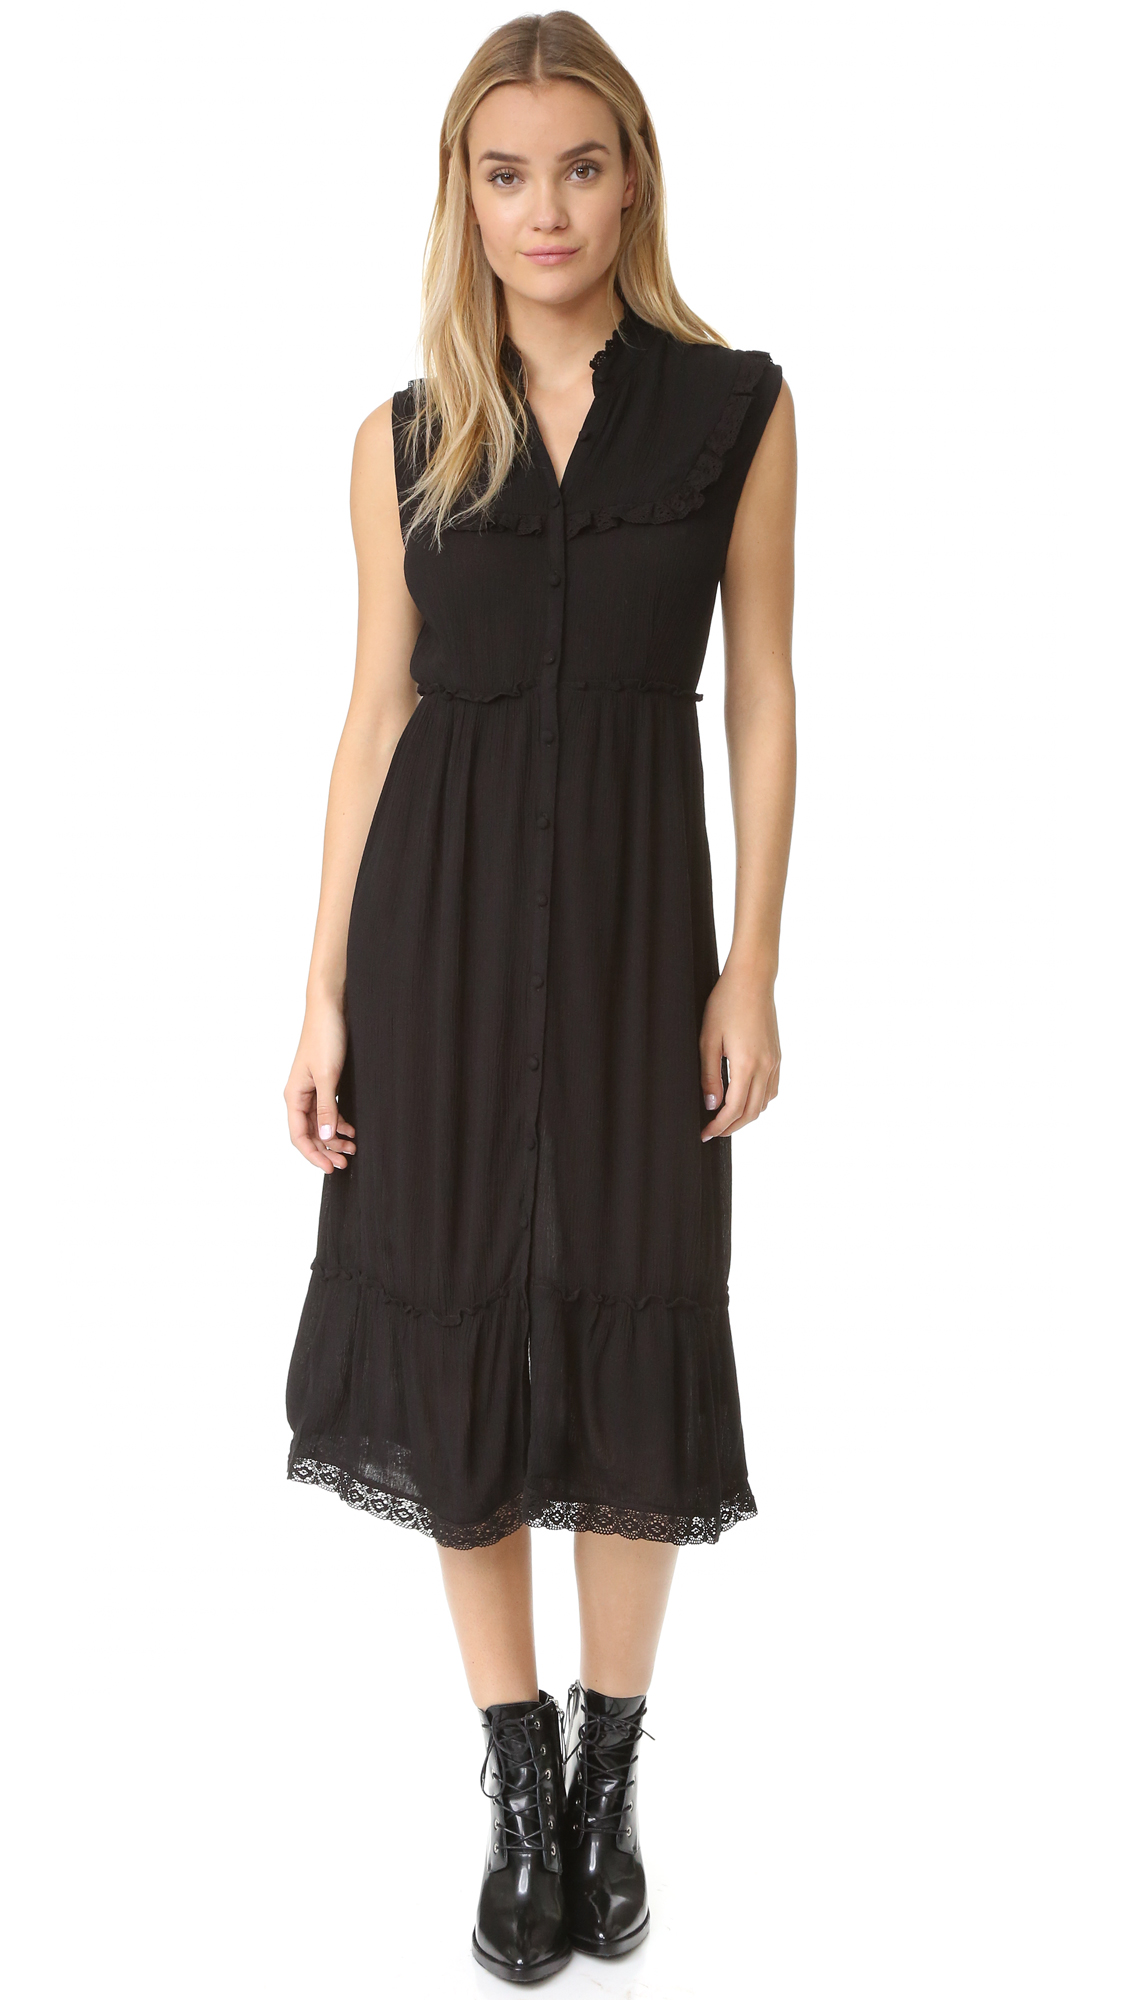 Knot Sisters Outlaw Dress - Black